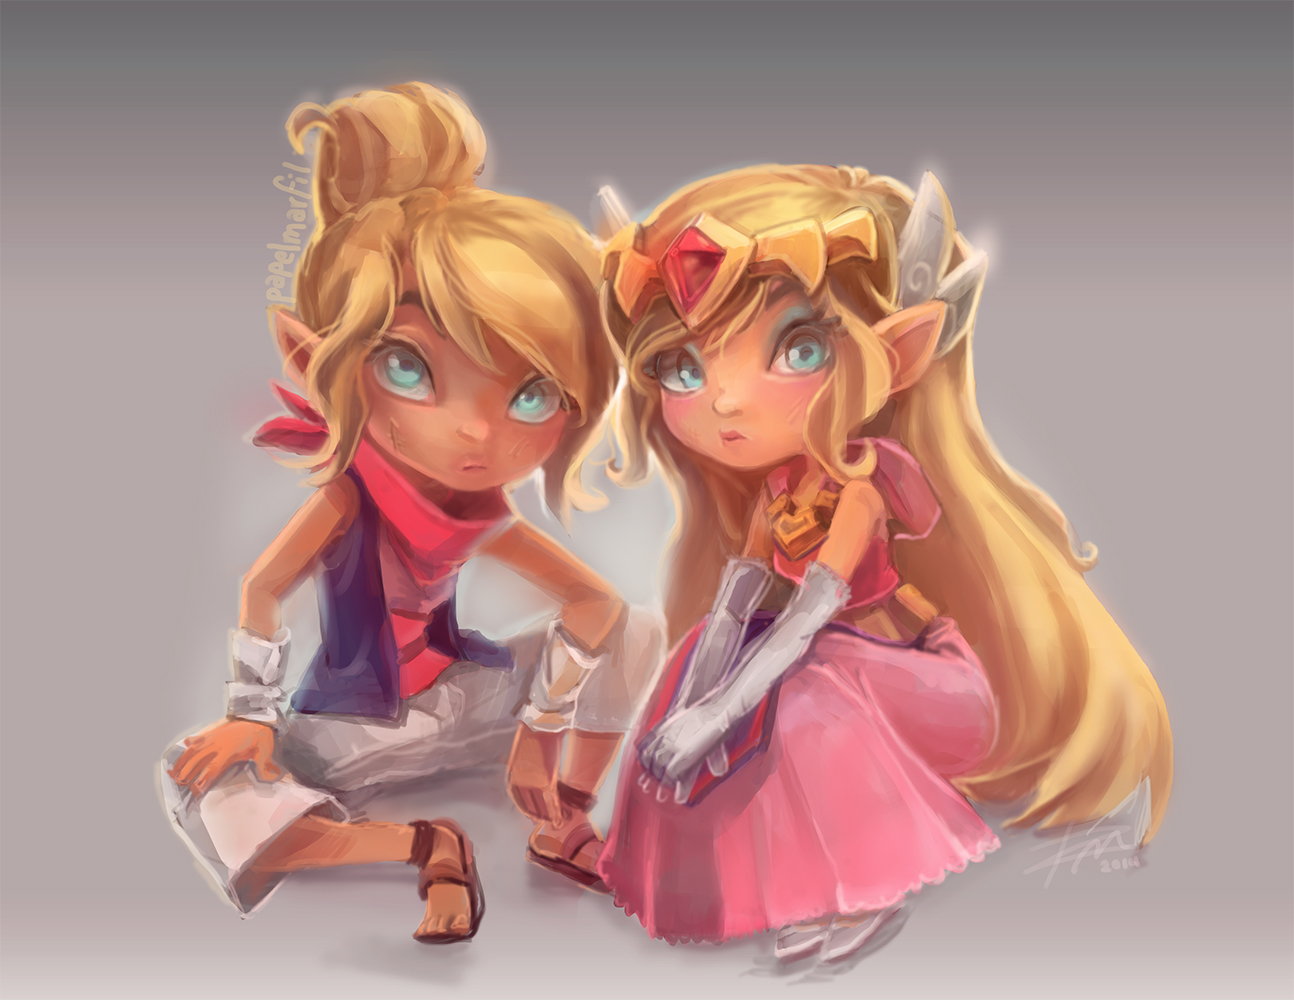 The Legend of Zelda - Zelda and Tetra by papelmarfil